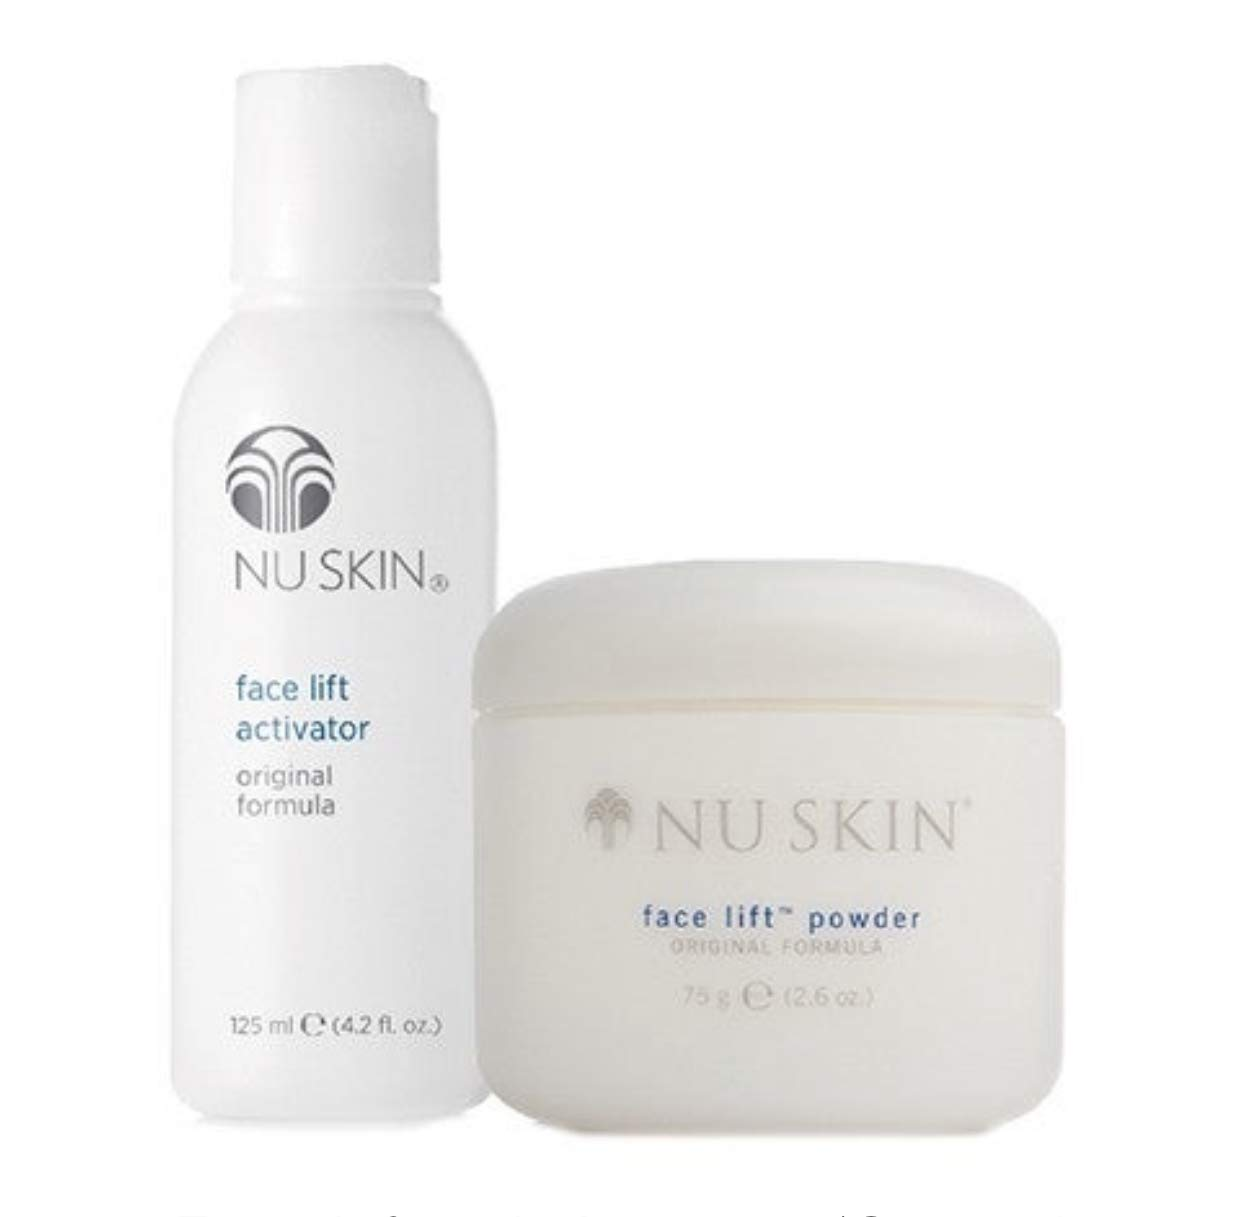 Nu Skin Face Lift with Activator (Original Formula)